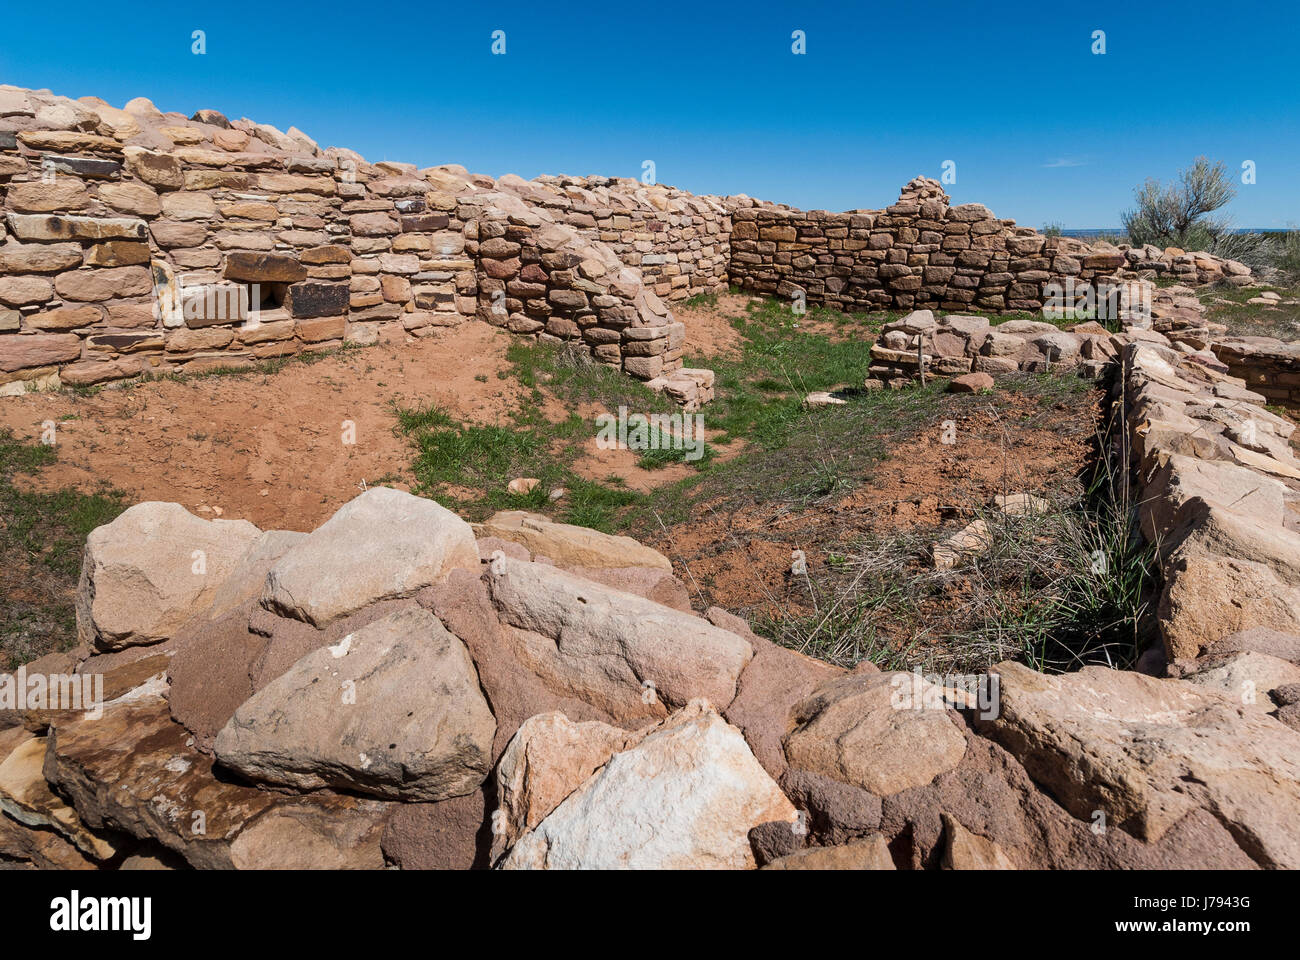 Lowry Pueblo ruins, Canyons of the Ancients National Monument northwest of Cortez, Colorado. - Stock Image